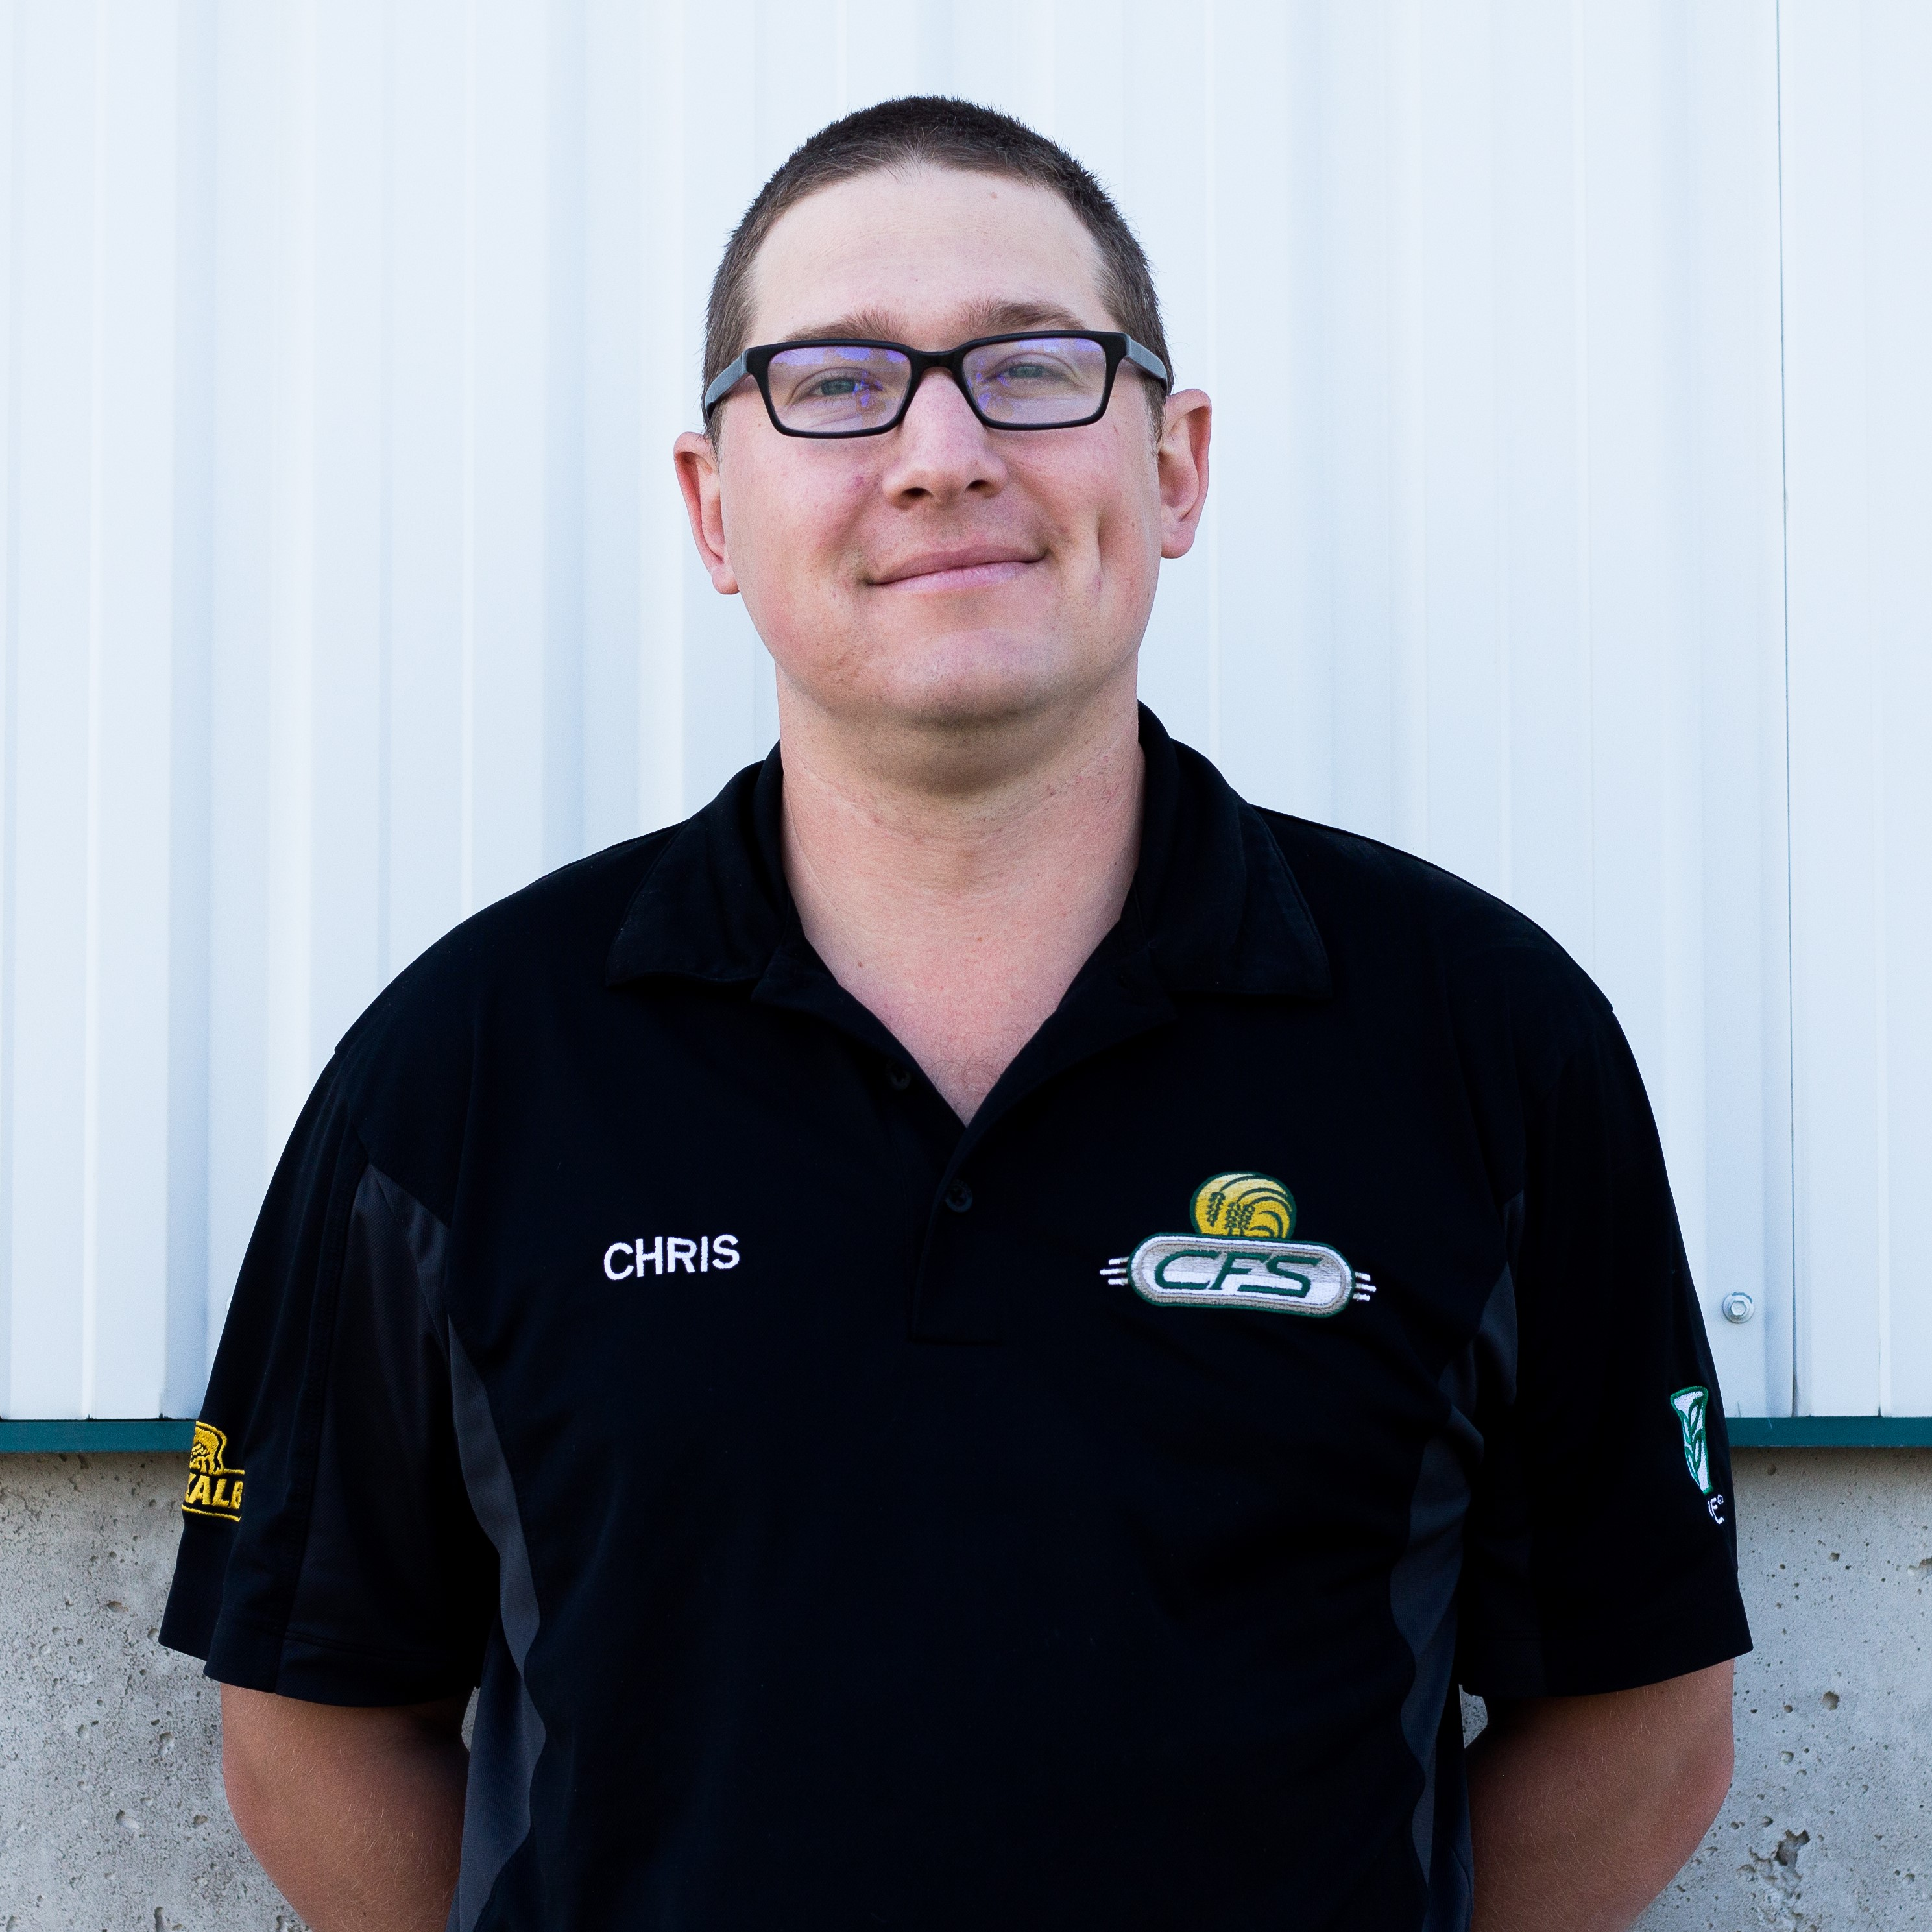 Chris HainesAgronomy, Precision Planting, Customer Service Chris grew up in Kingston and is currently living in community of Listowel. He joined the CFS team in the summer of 2018. He is a graduate of University of Guelph and previously worked for Syngenta Canada Inc. in the pesticide formulation lab. Chris has boots on the ground experience as a crop scout and drone operator. He puts to practice his technical expertise to support our customers with their Precision Planting needs.